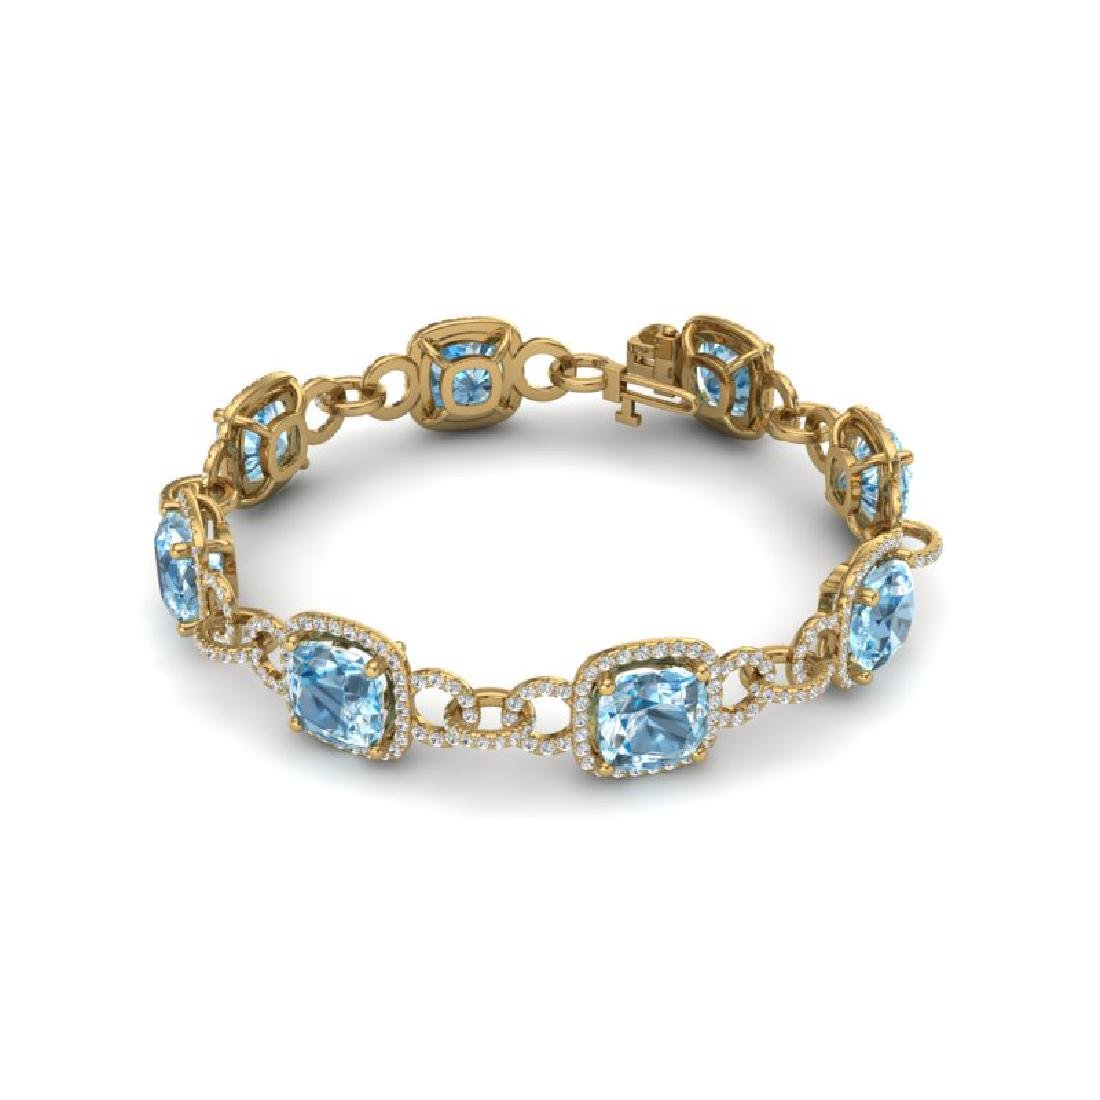 30 CTW Topaz & VS/SI Diamond Bracelet 14K Yellow Gold - 2